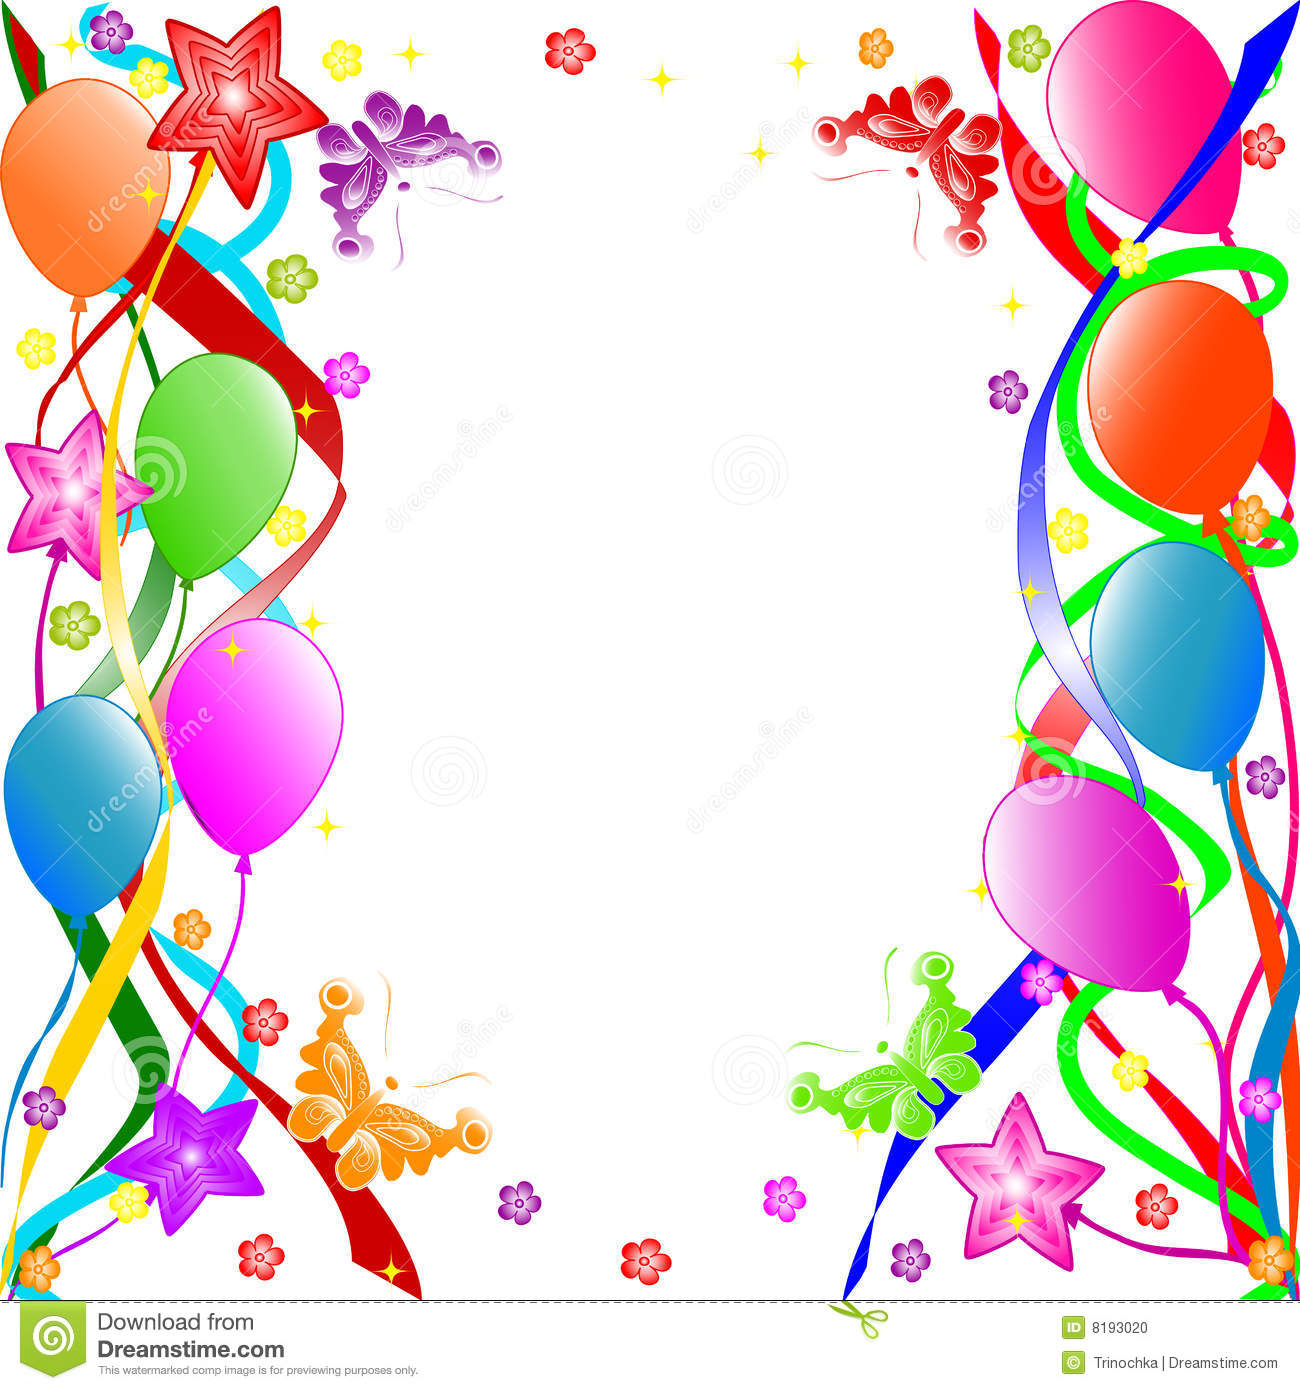 colorful birthday borders ; happy-birthday-background-8193020